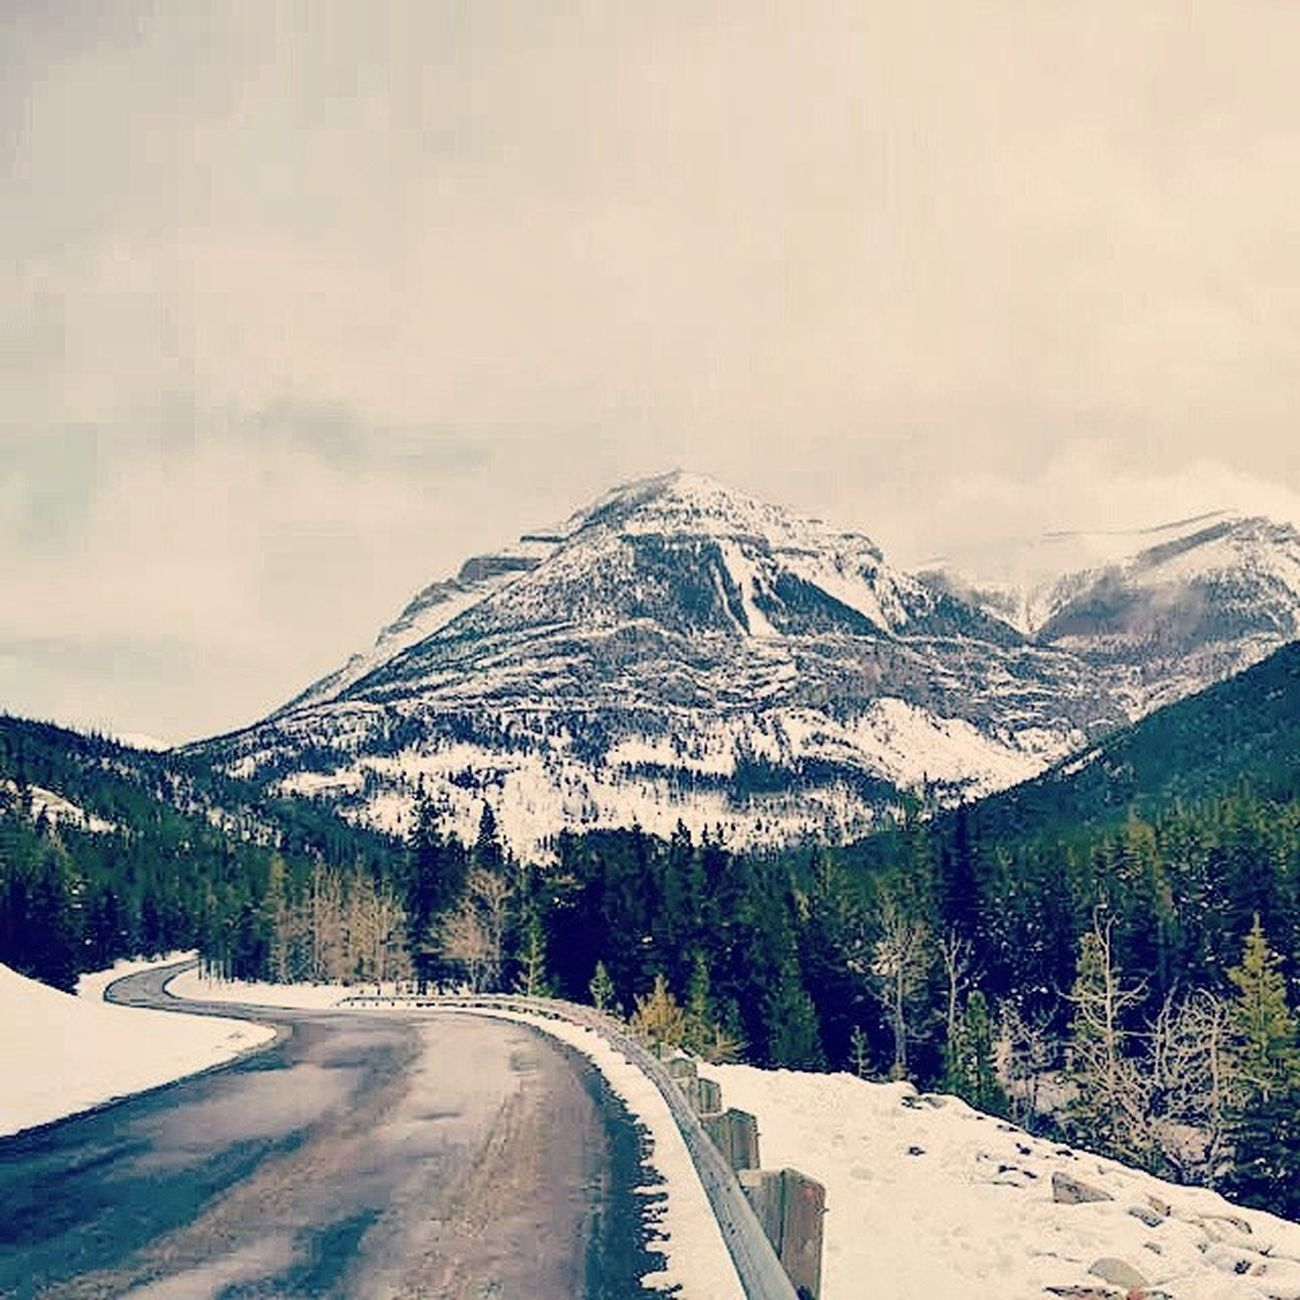 Gotta love the roads up north. Picture taken in Waterton - AB - Canada. April 2014. Explorecanada Explorealberta Explorewaterton Alberta Albertatourism Traveltherockies Travelcanada Travelalberta Travelwaterton Tourismalberta Canadatourism Ab Yql Travel Backpacking Hiking Hike Snow Road Beautiafulroads Rockymountains Greatwhitenorthcollective Winterisbetter Keepexploring Waterton greatcanada canada